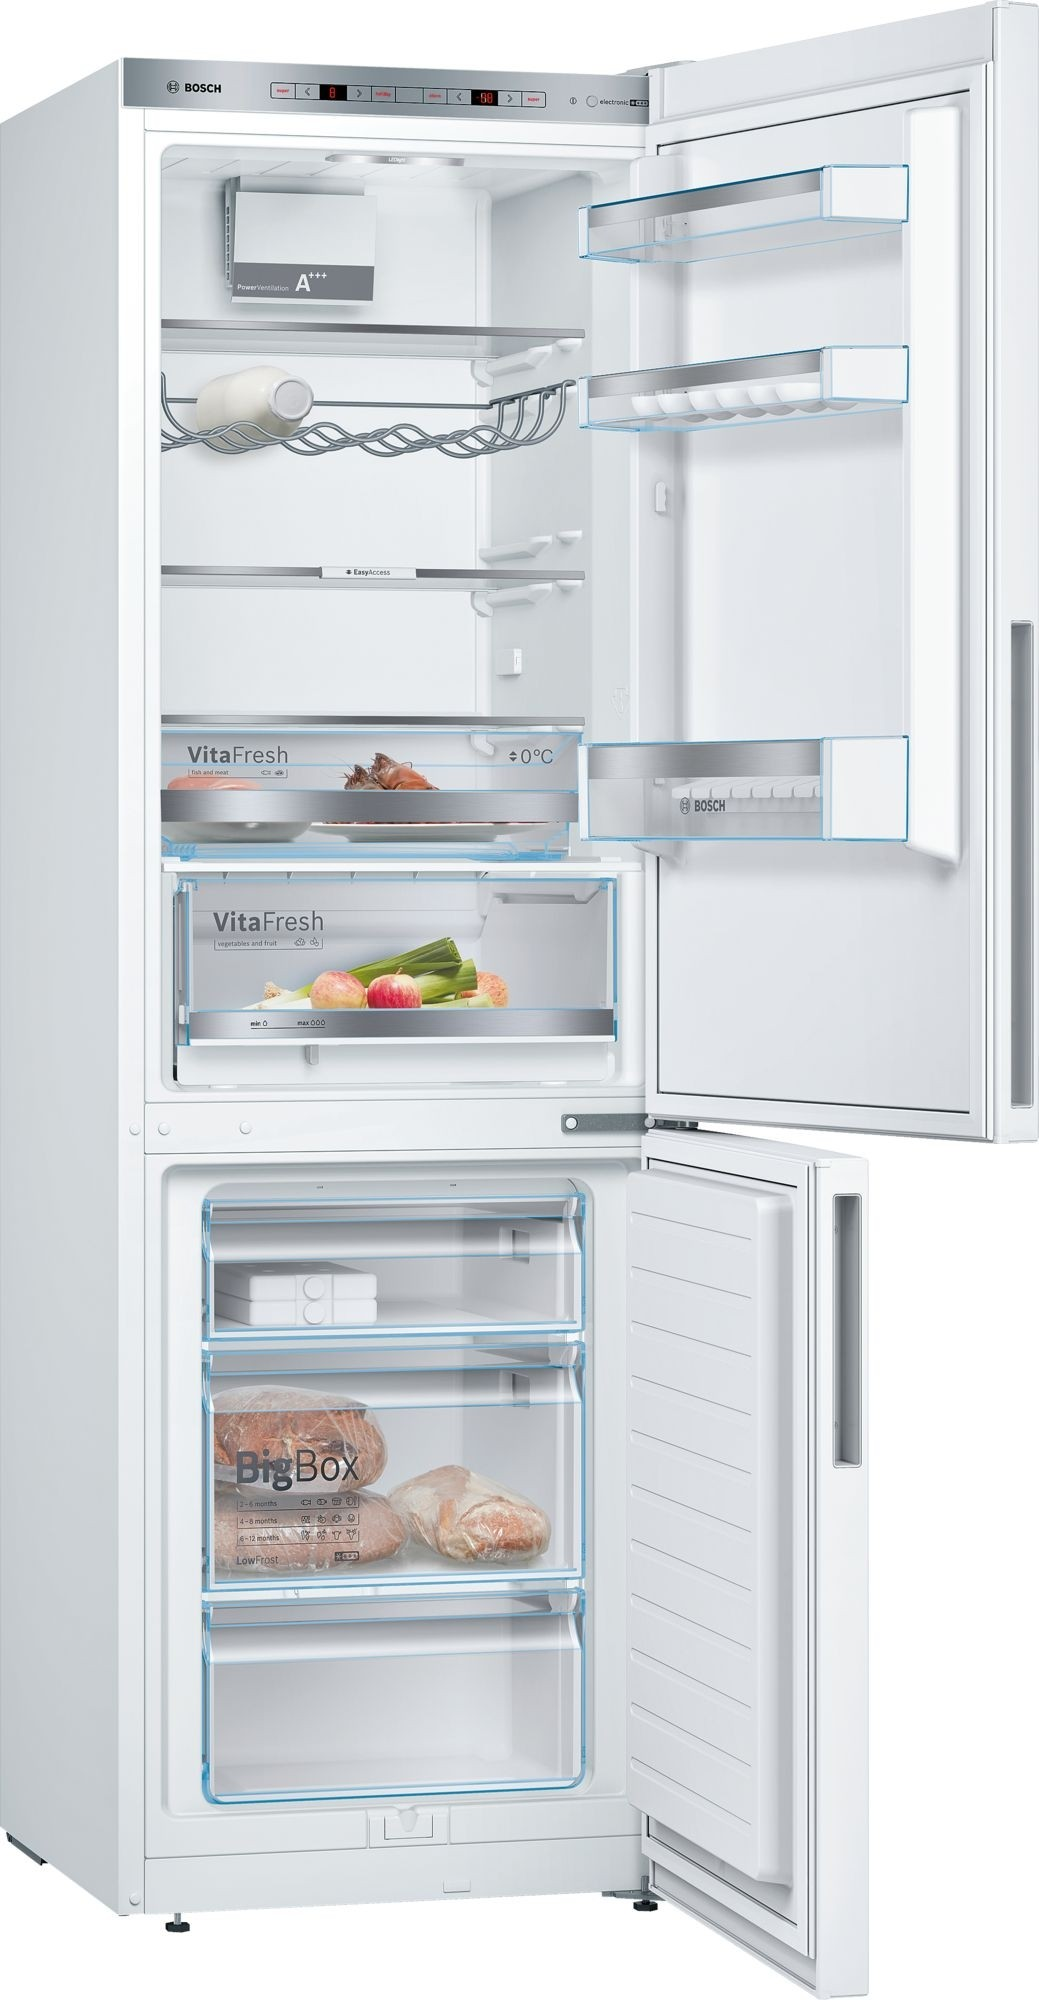 Bosch KGE36AWCA Fridge Freezer